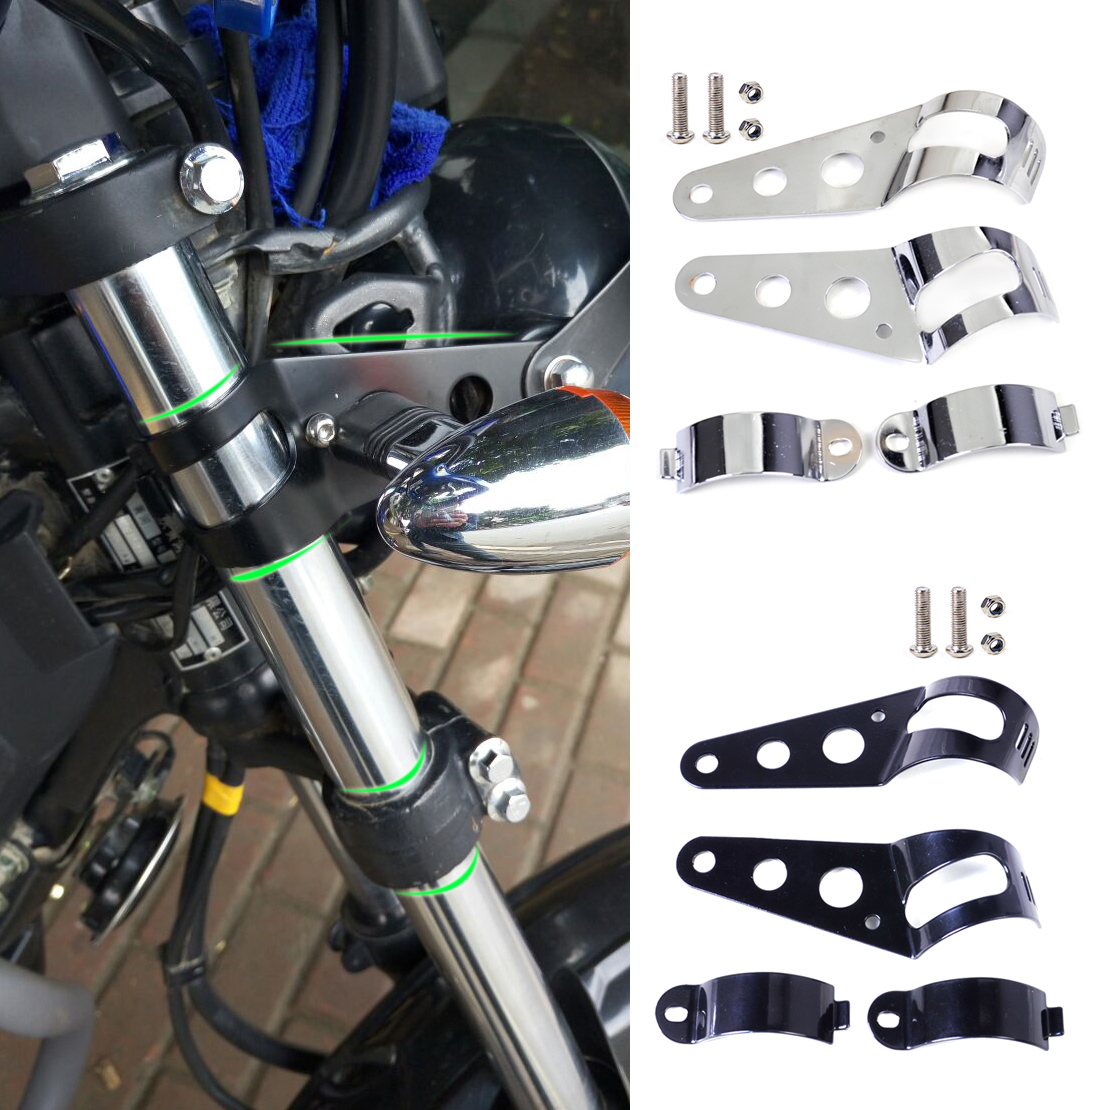 Dwcx 33 45mm motorcycles headlight mount holder brackets stands for harley honda kawasaki ninja yamaha suzuki bandit